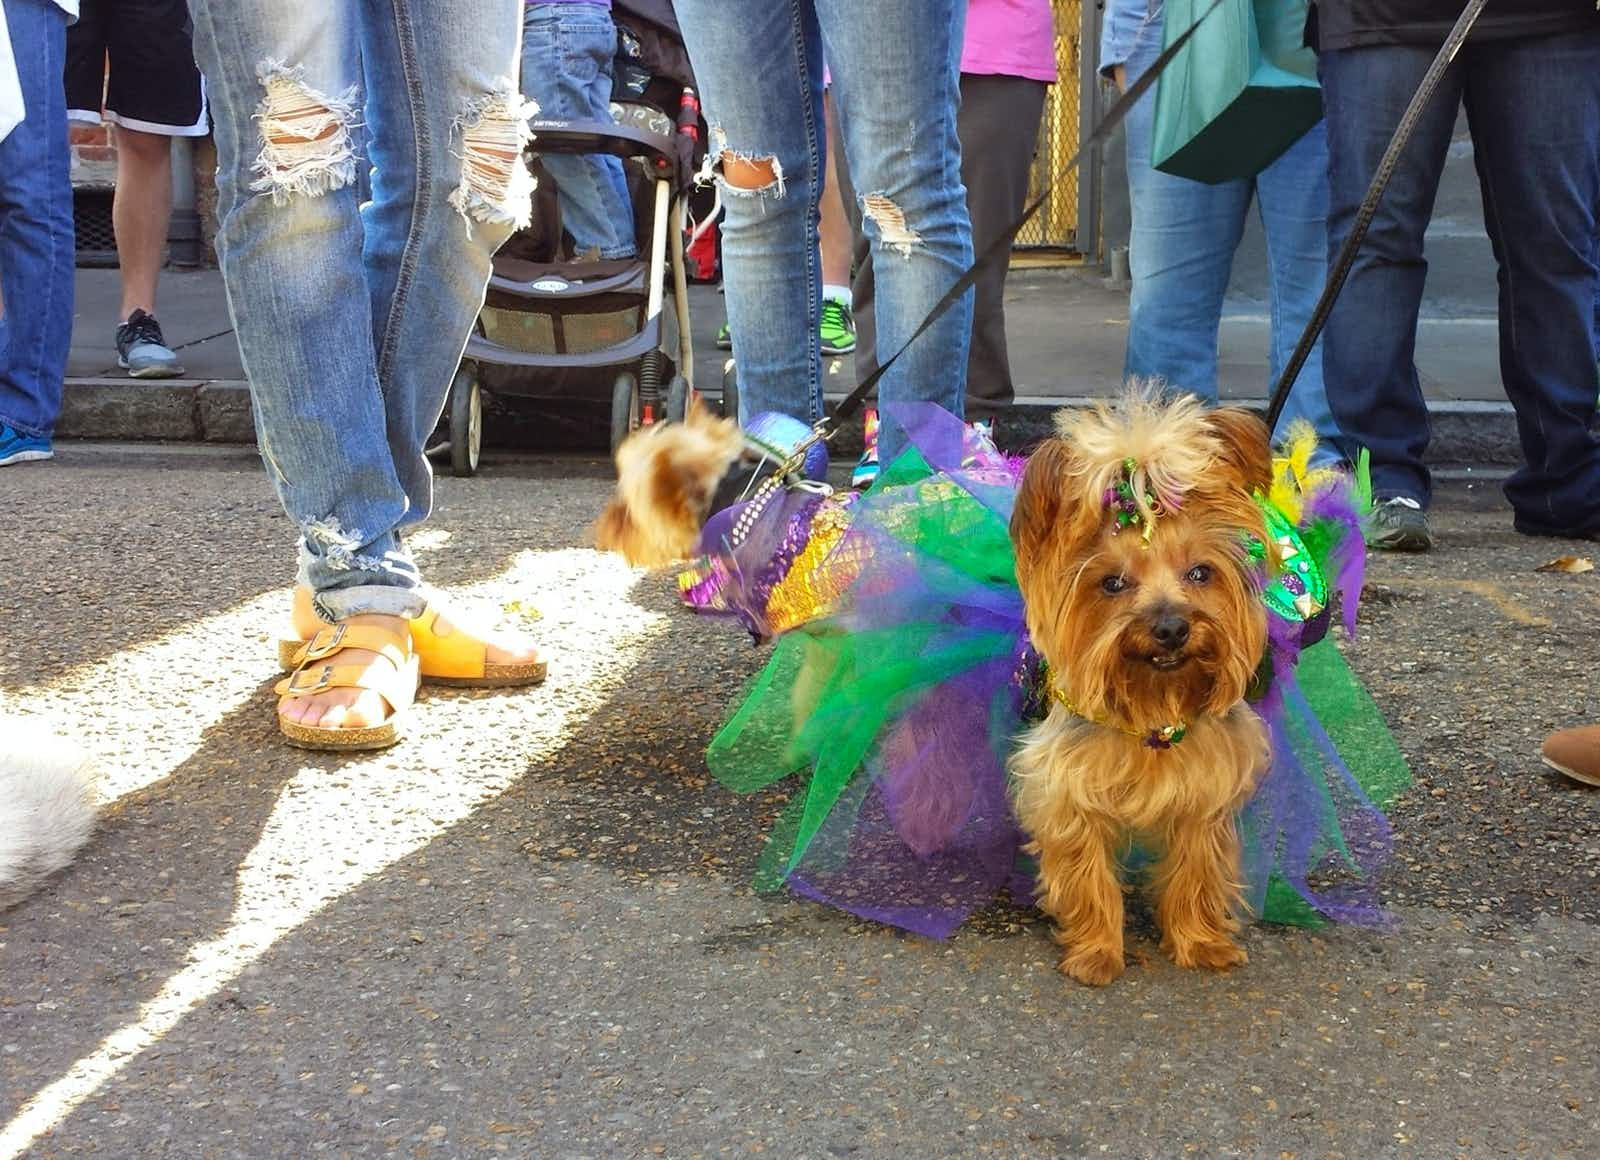 A small terrier dressed in a fairy costume on a leash amid several pairs of jean-clad legs on a street in New Orleans